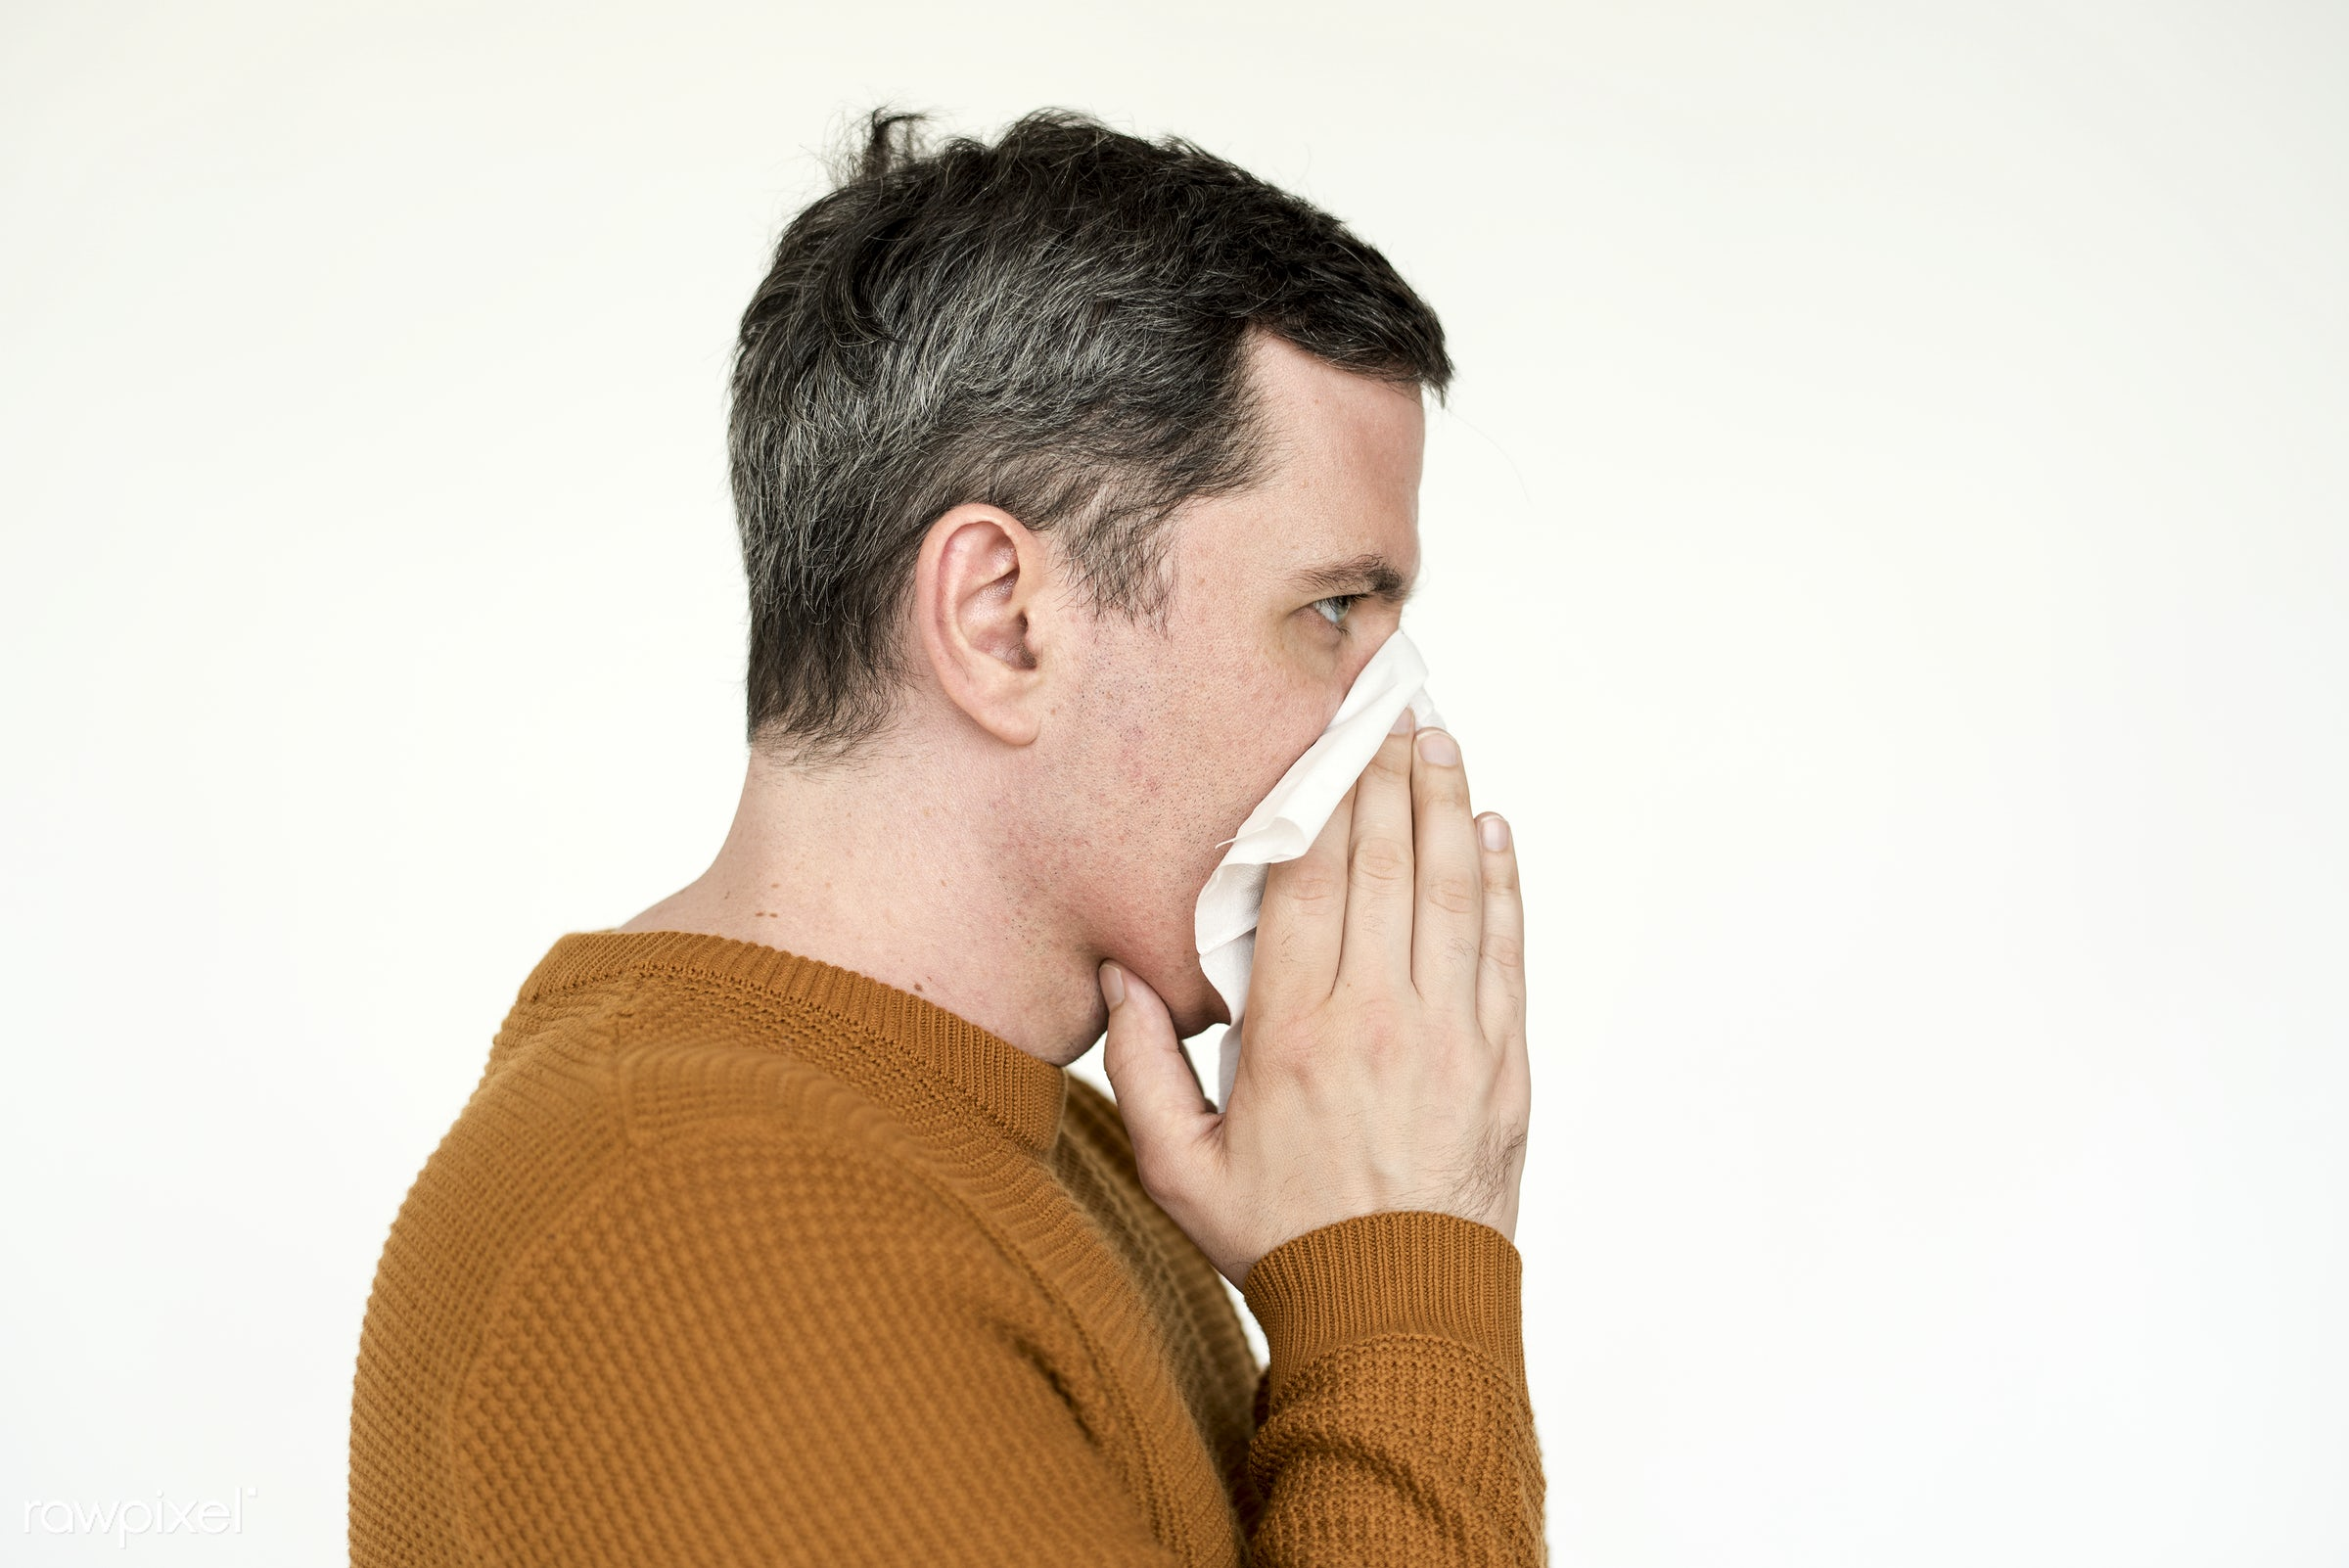 Portrait of a mature man sneezing into tissue - studio, concept, model, person, people, style, nature, stylish, men, closeup...